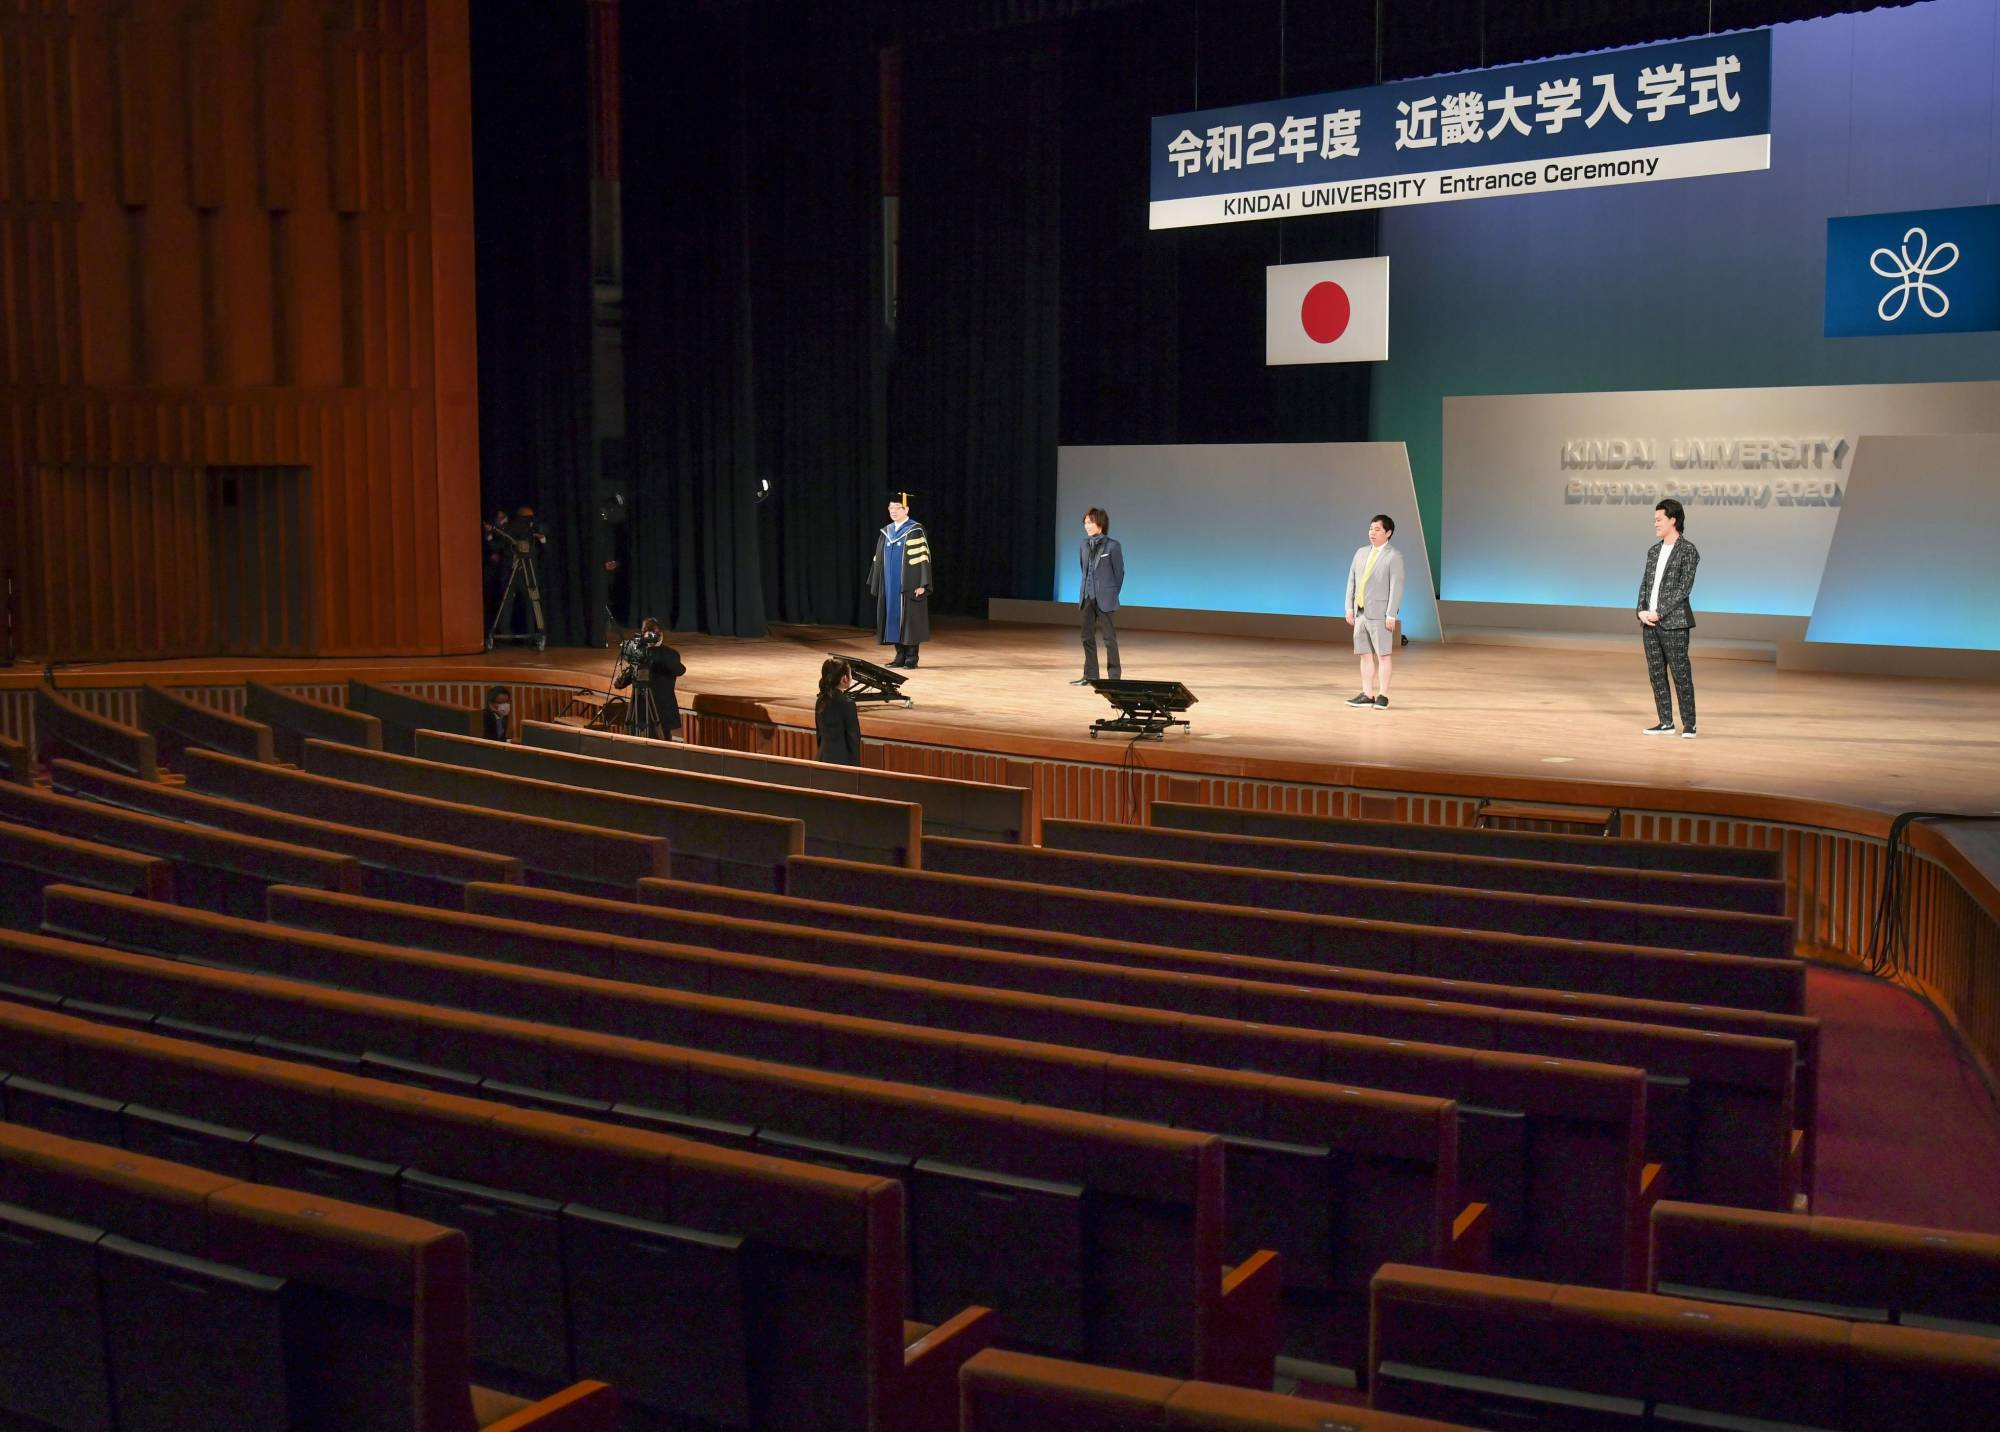 An entrance ceremony for Kindai University is held in Osaka on April 4 with no students present due to the spread of the new coronavirus. The students watched via YouTube. | KYODO